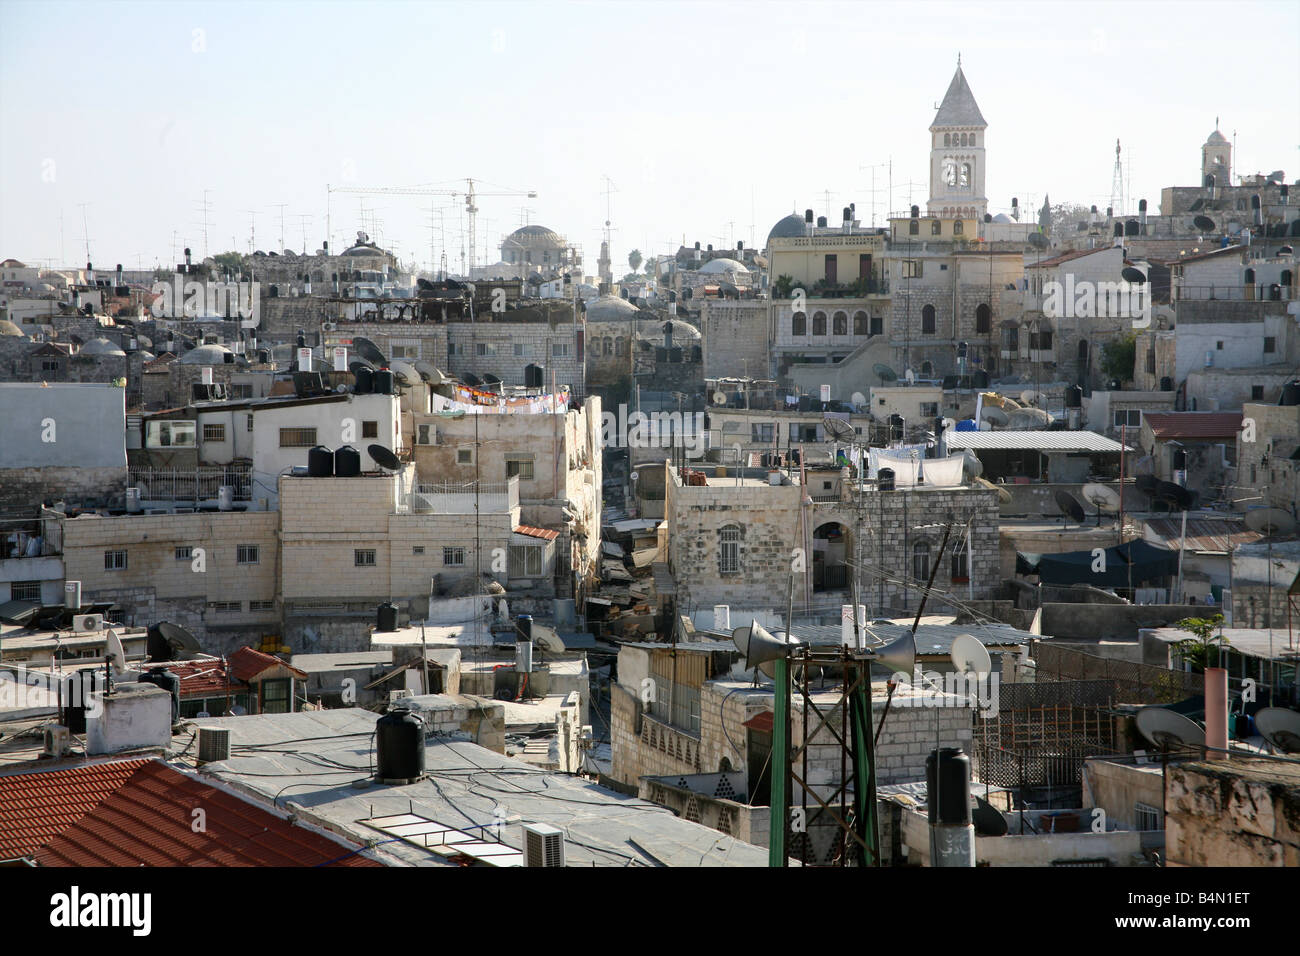 Urban skyline full of chimneys and communications equipment in the old city section of Jerusalem - Stock Image